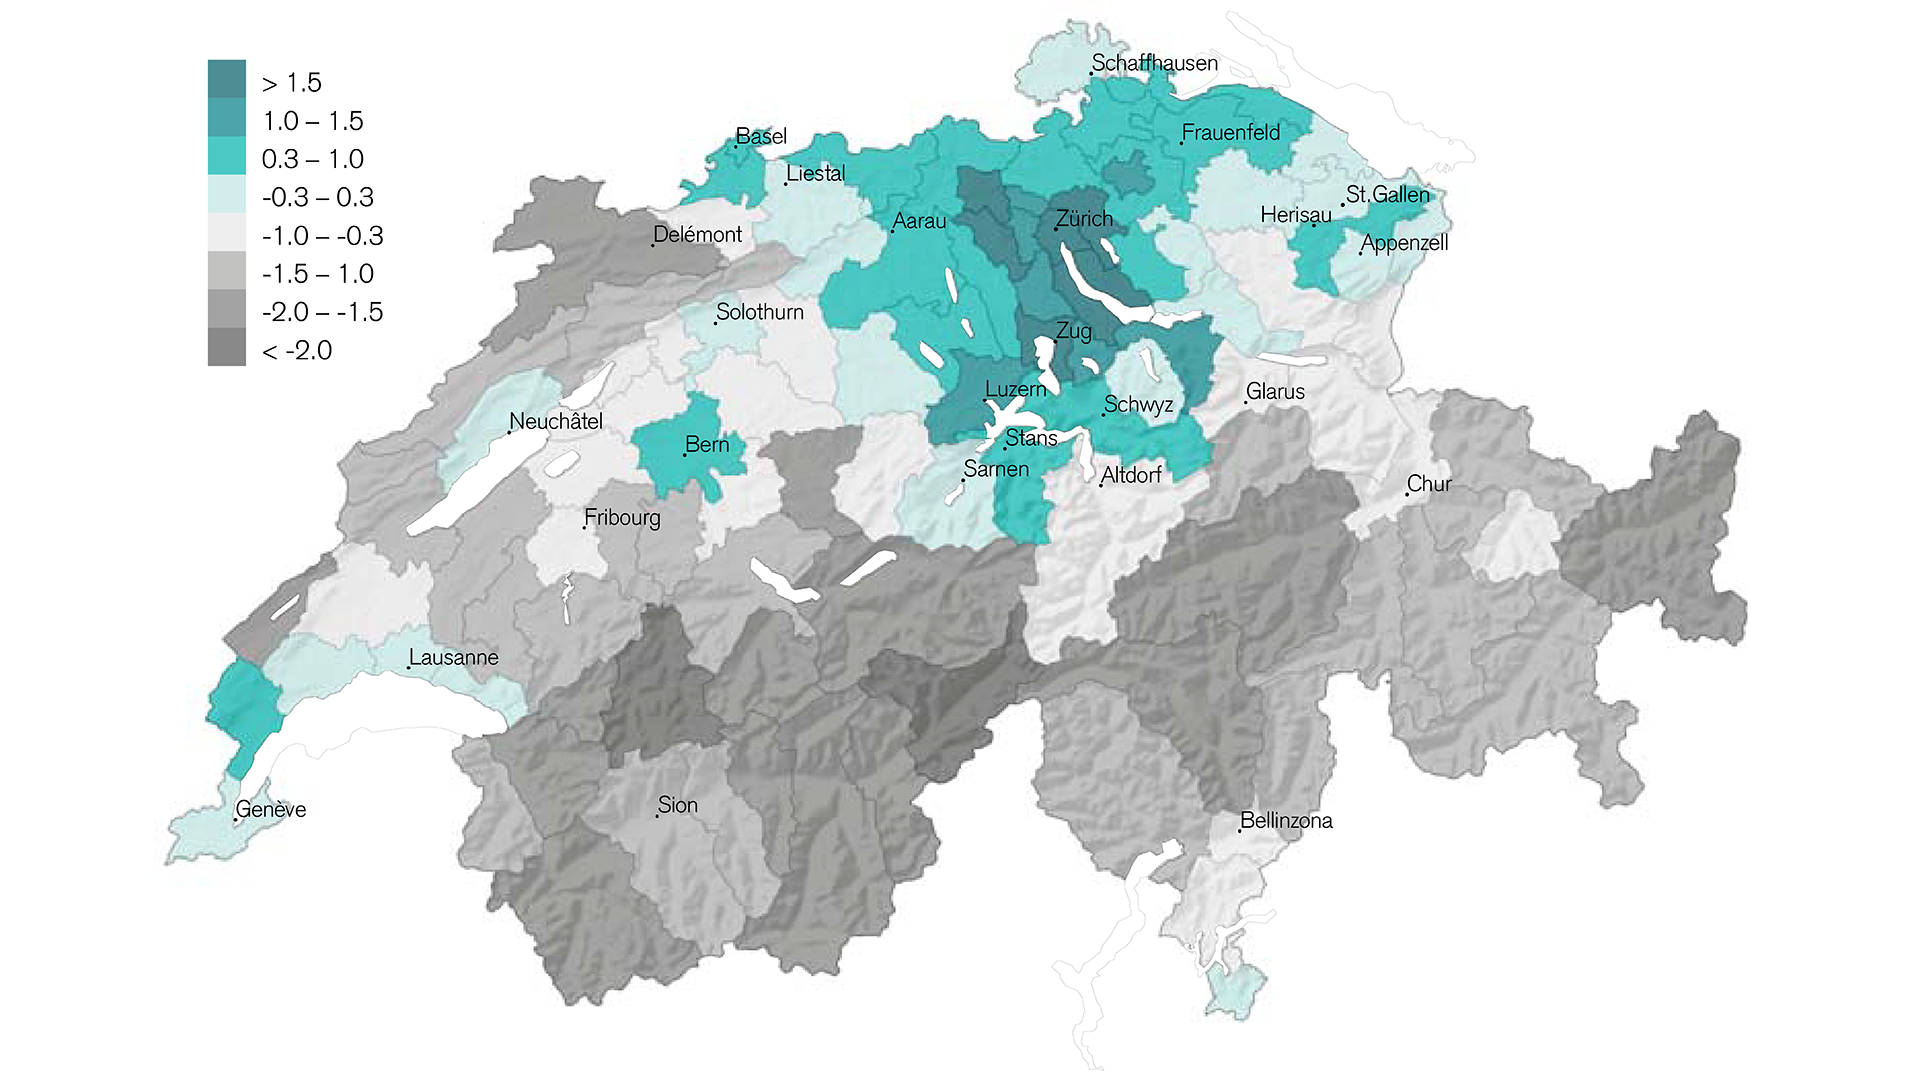 locational-quality-of-swiss-economic-regions-2018